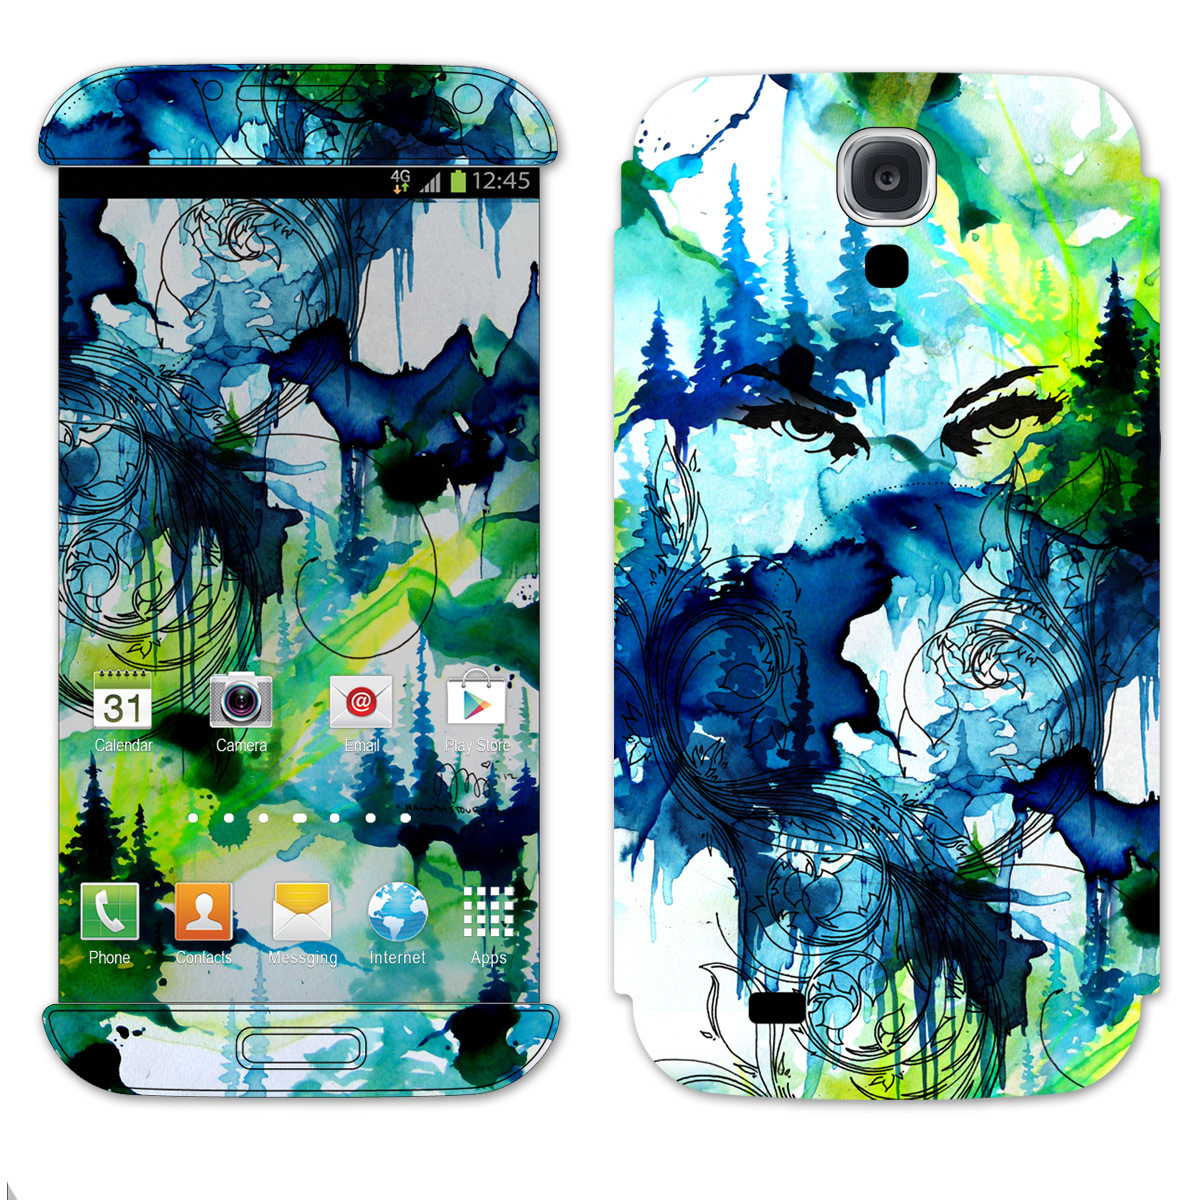 Outside Lands 2013 Custom Samsung Galaxy IV Skin